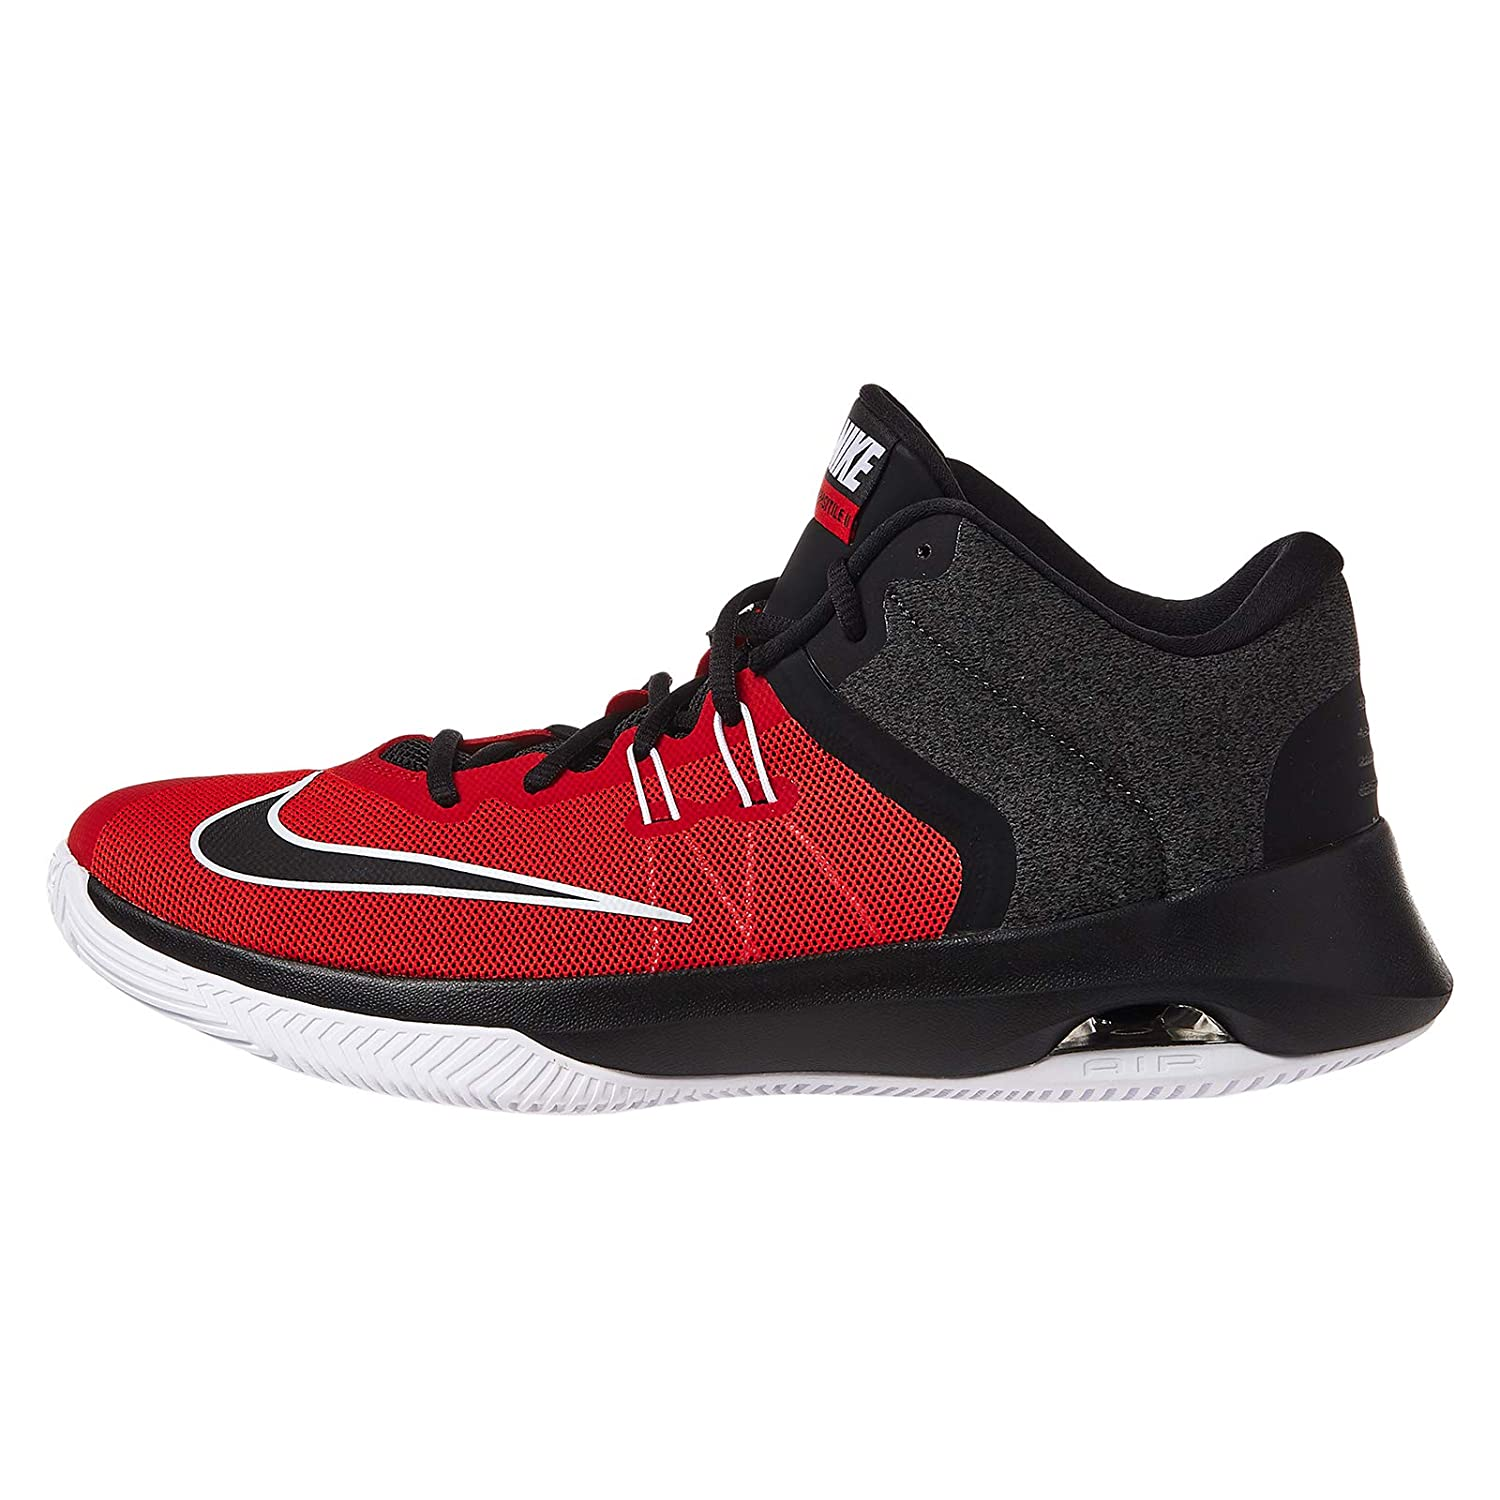 the latest 92b52 fd0ae Nike Men s Air Versitile Ii University Red Black-White Basketball Shoes-7  UK India(41 EU)(8 US) (921692-600)  Buy Online at Low Prices in India -  Amazon.in